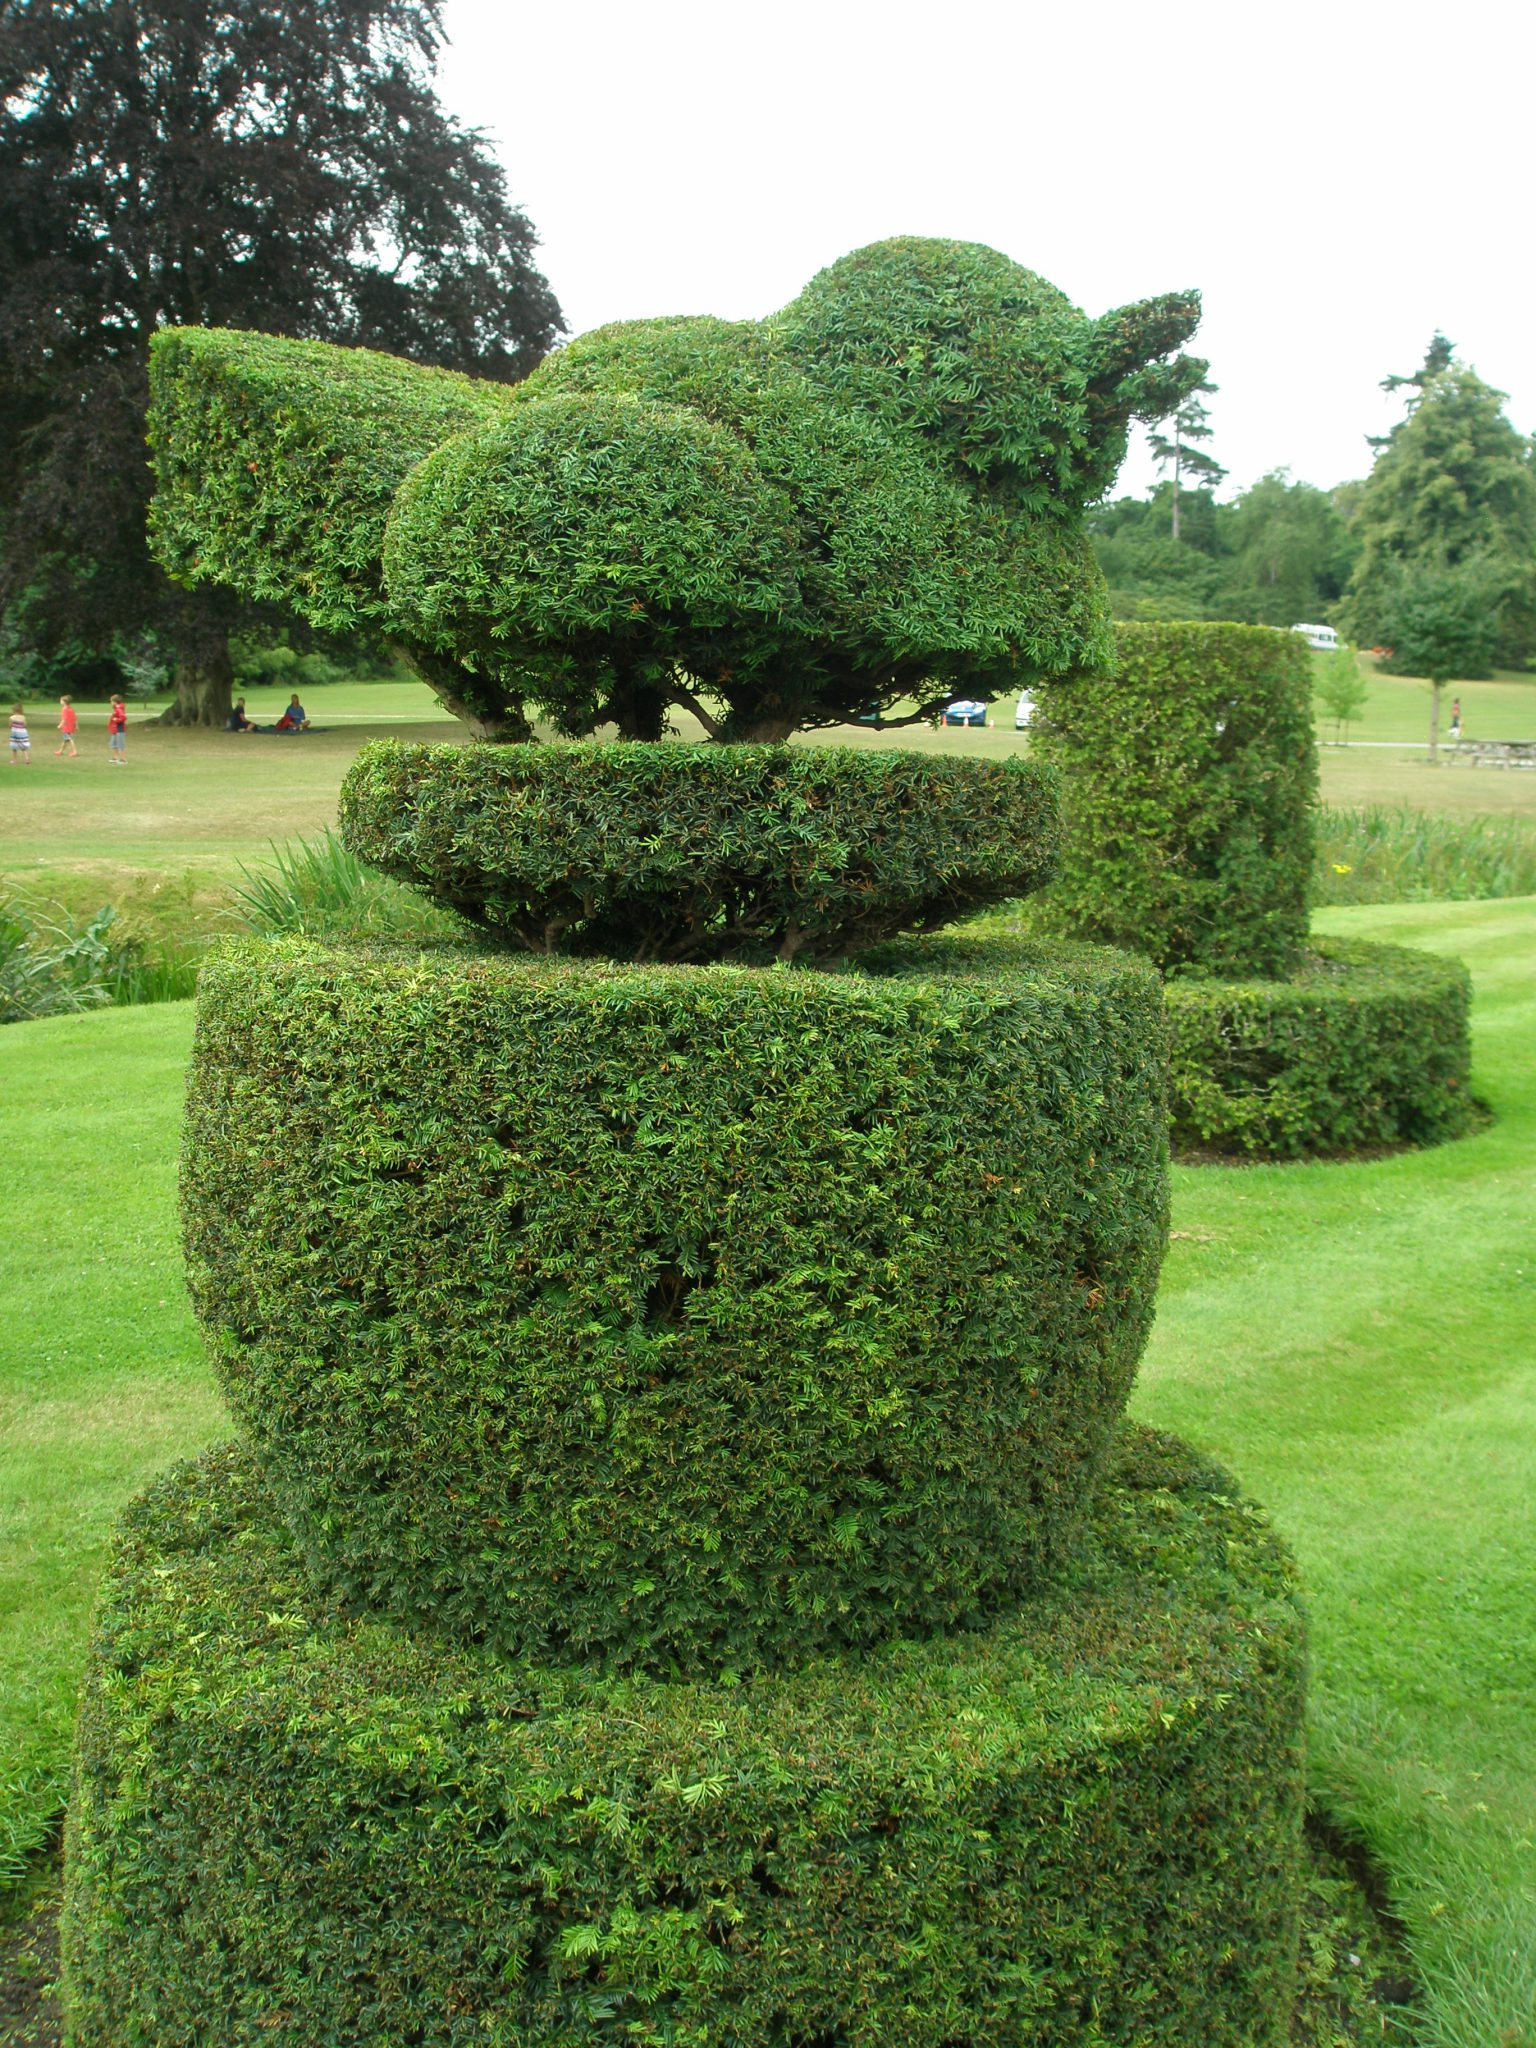 Another example of How to Have Fun With Hedge Clippers